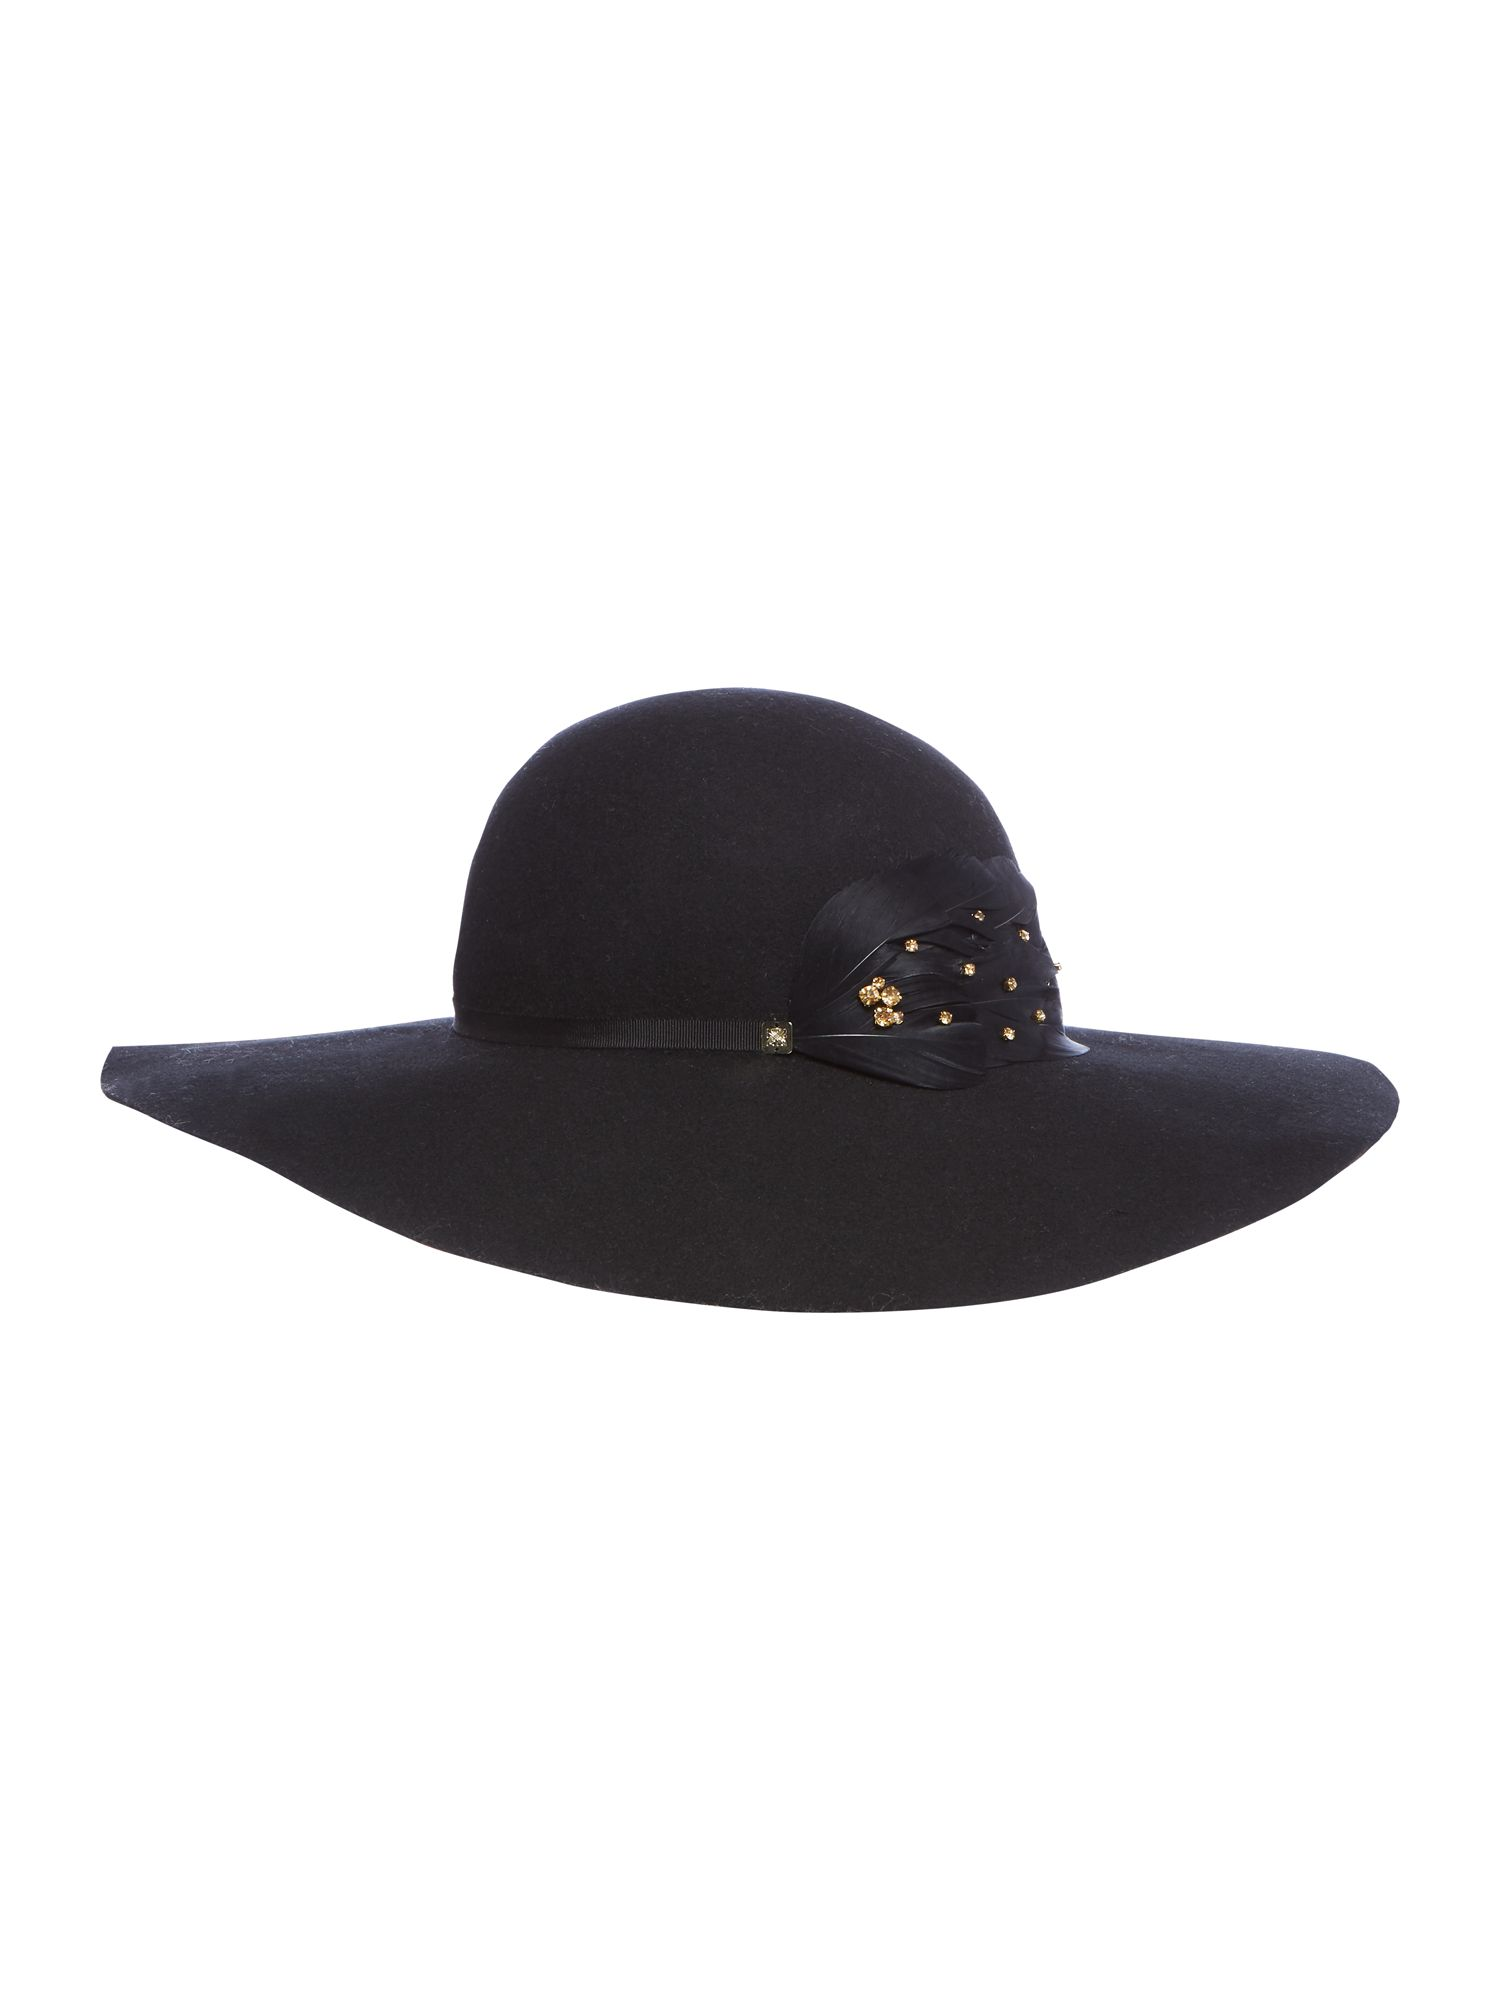 biba biba jewelled floppy hat